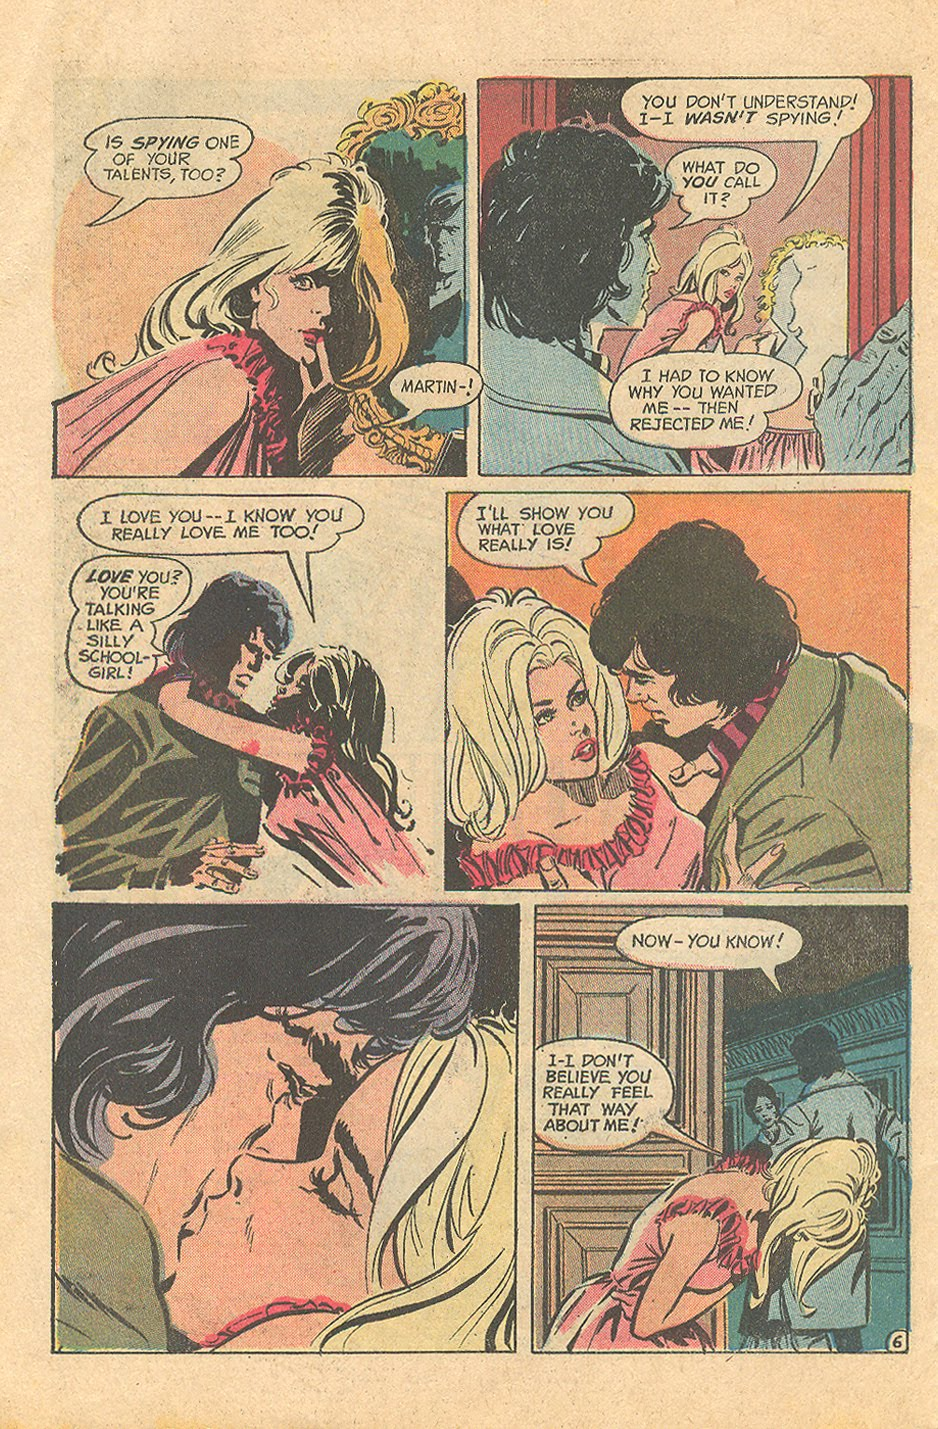 """I Shouldn't Have Stayed!"" Falling in Love #139 (January/February 1973)"